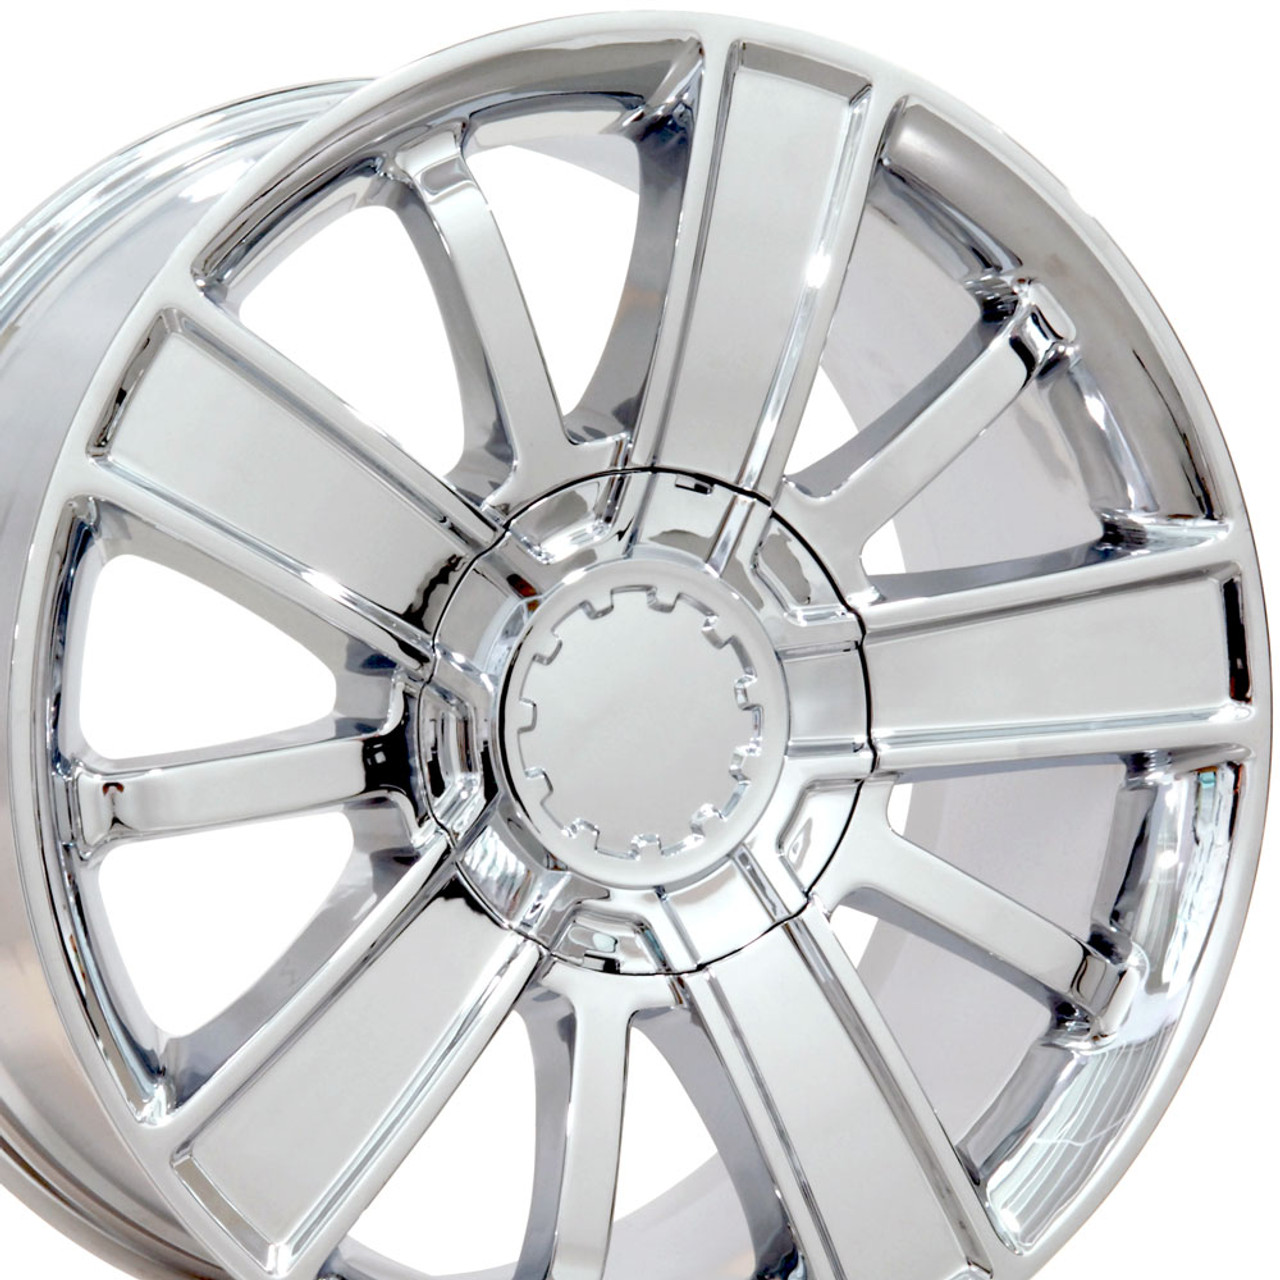 20 Fits Chevrolet Chevy Silverado Tahoe High Country Style Wheels Set Of 4 Chrome 20x9 Rims Gmc Sierra